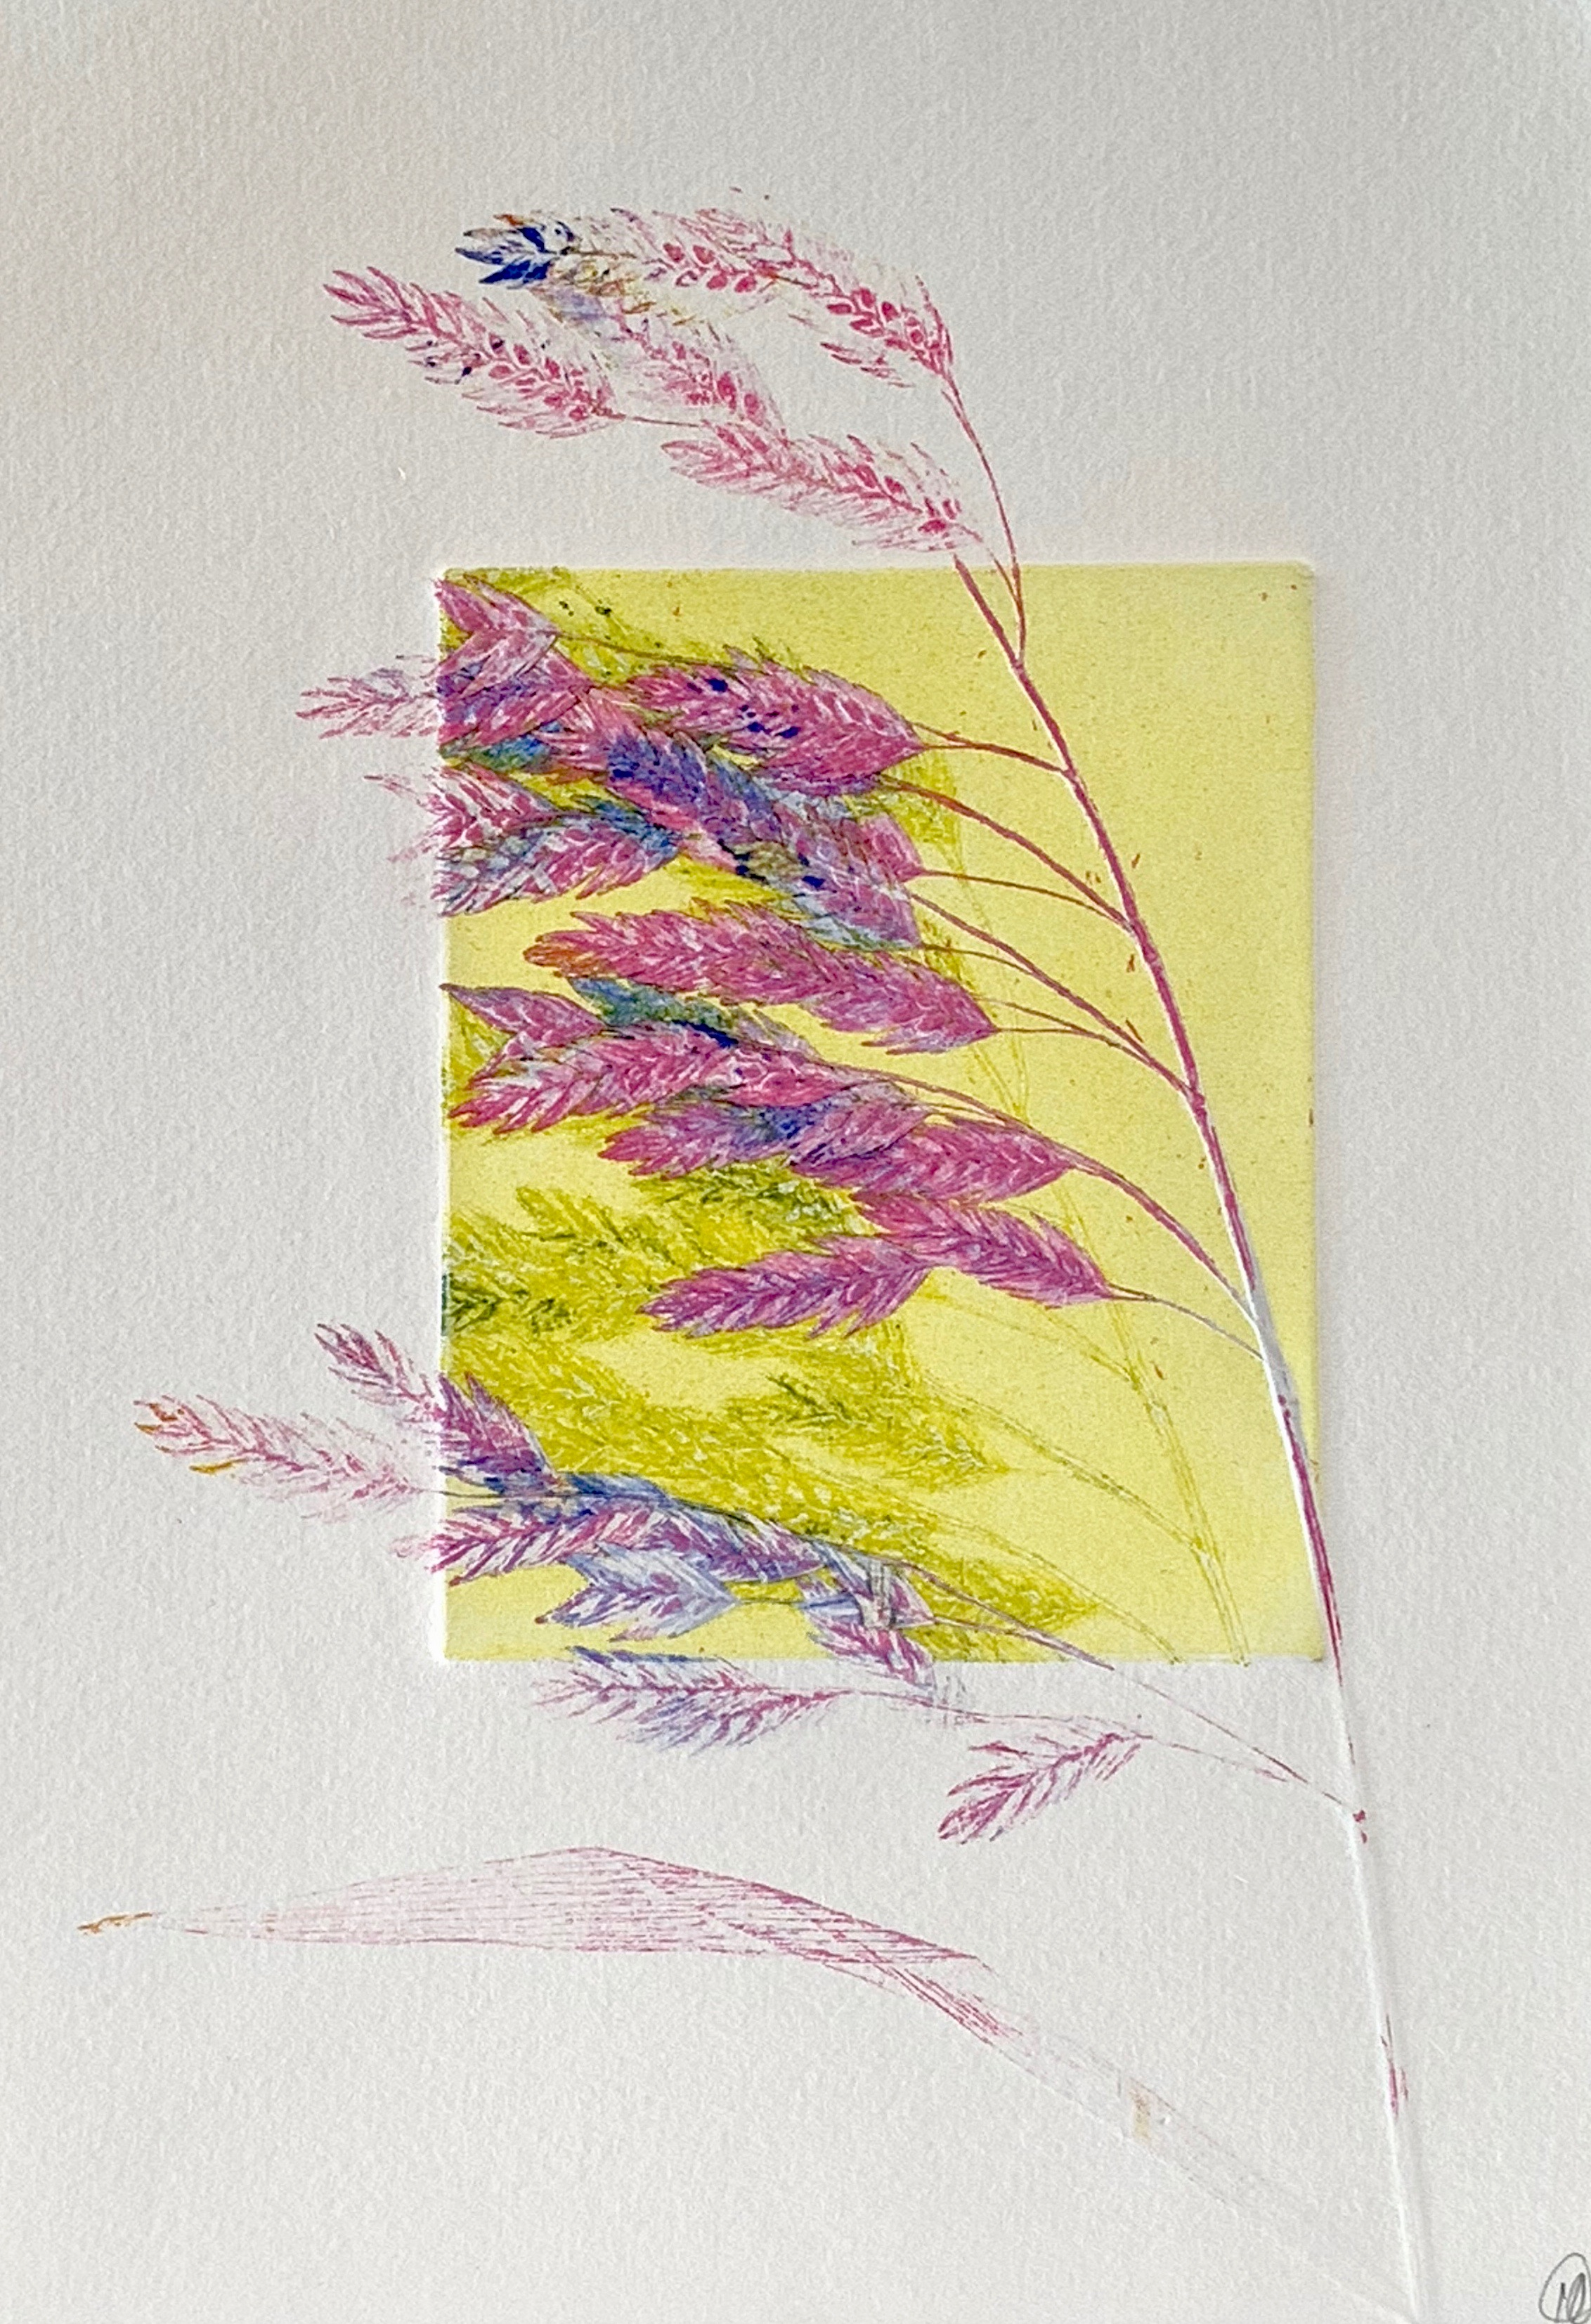 Oats with tannin and color letterpress monotype at Washington Printers Gallery